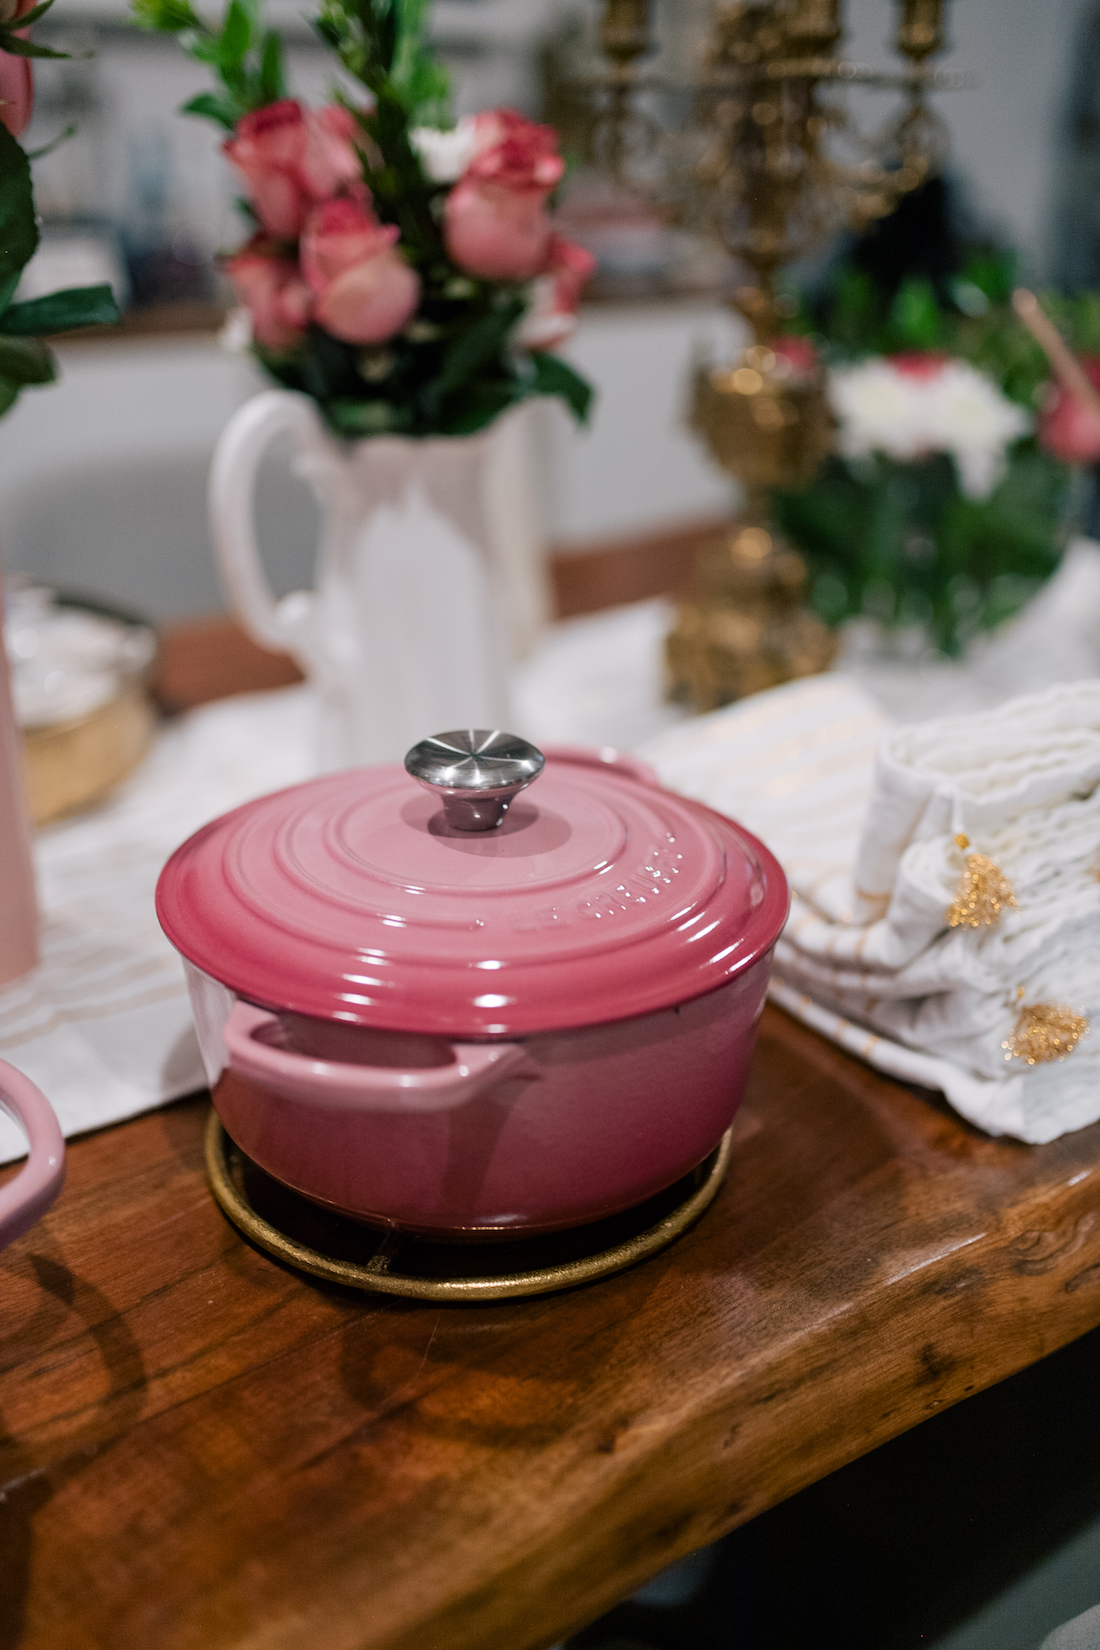 Le Creuset featured